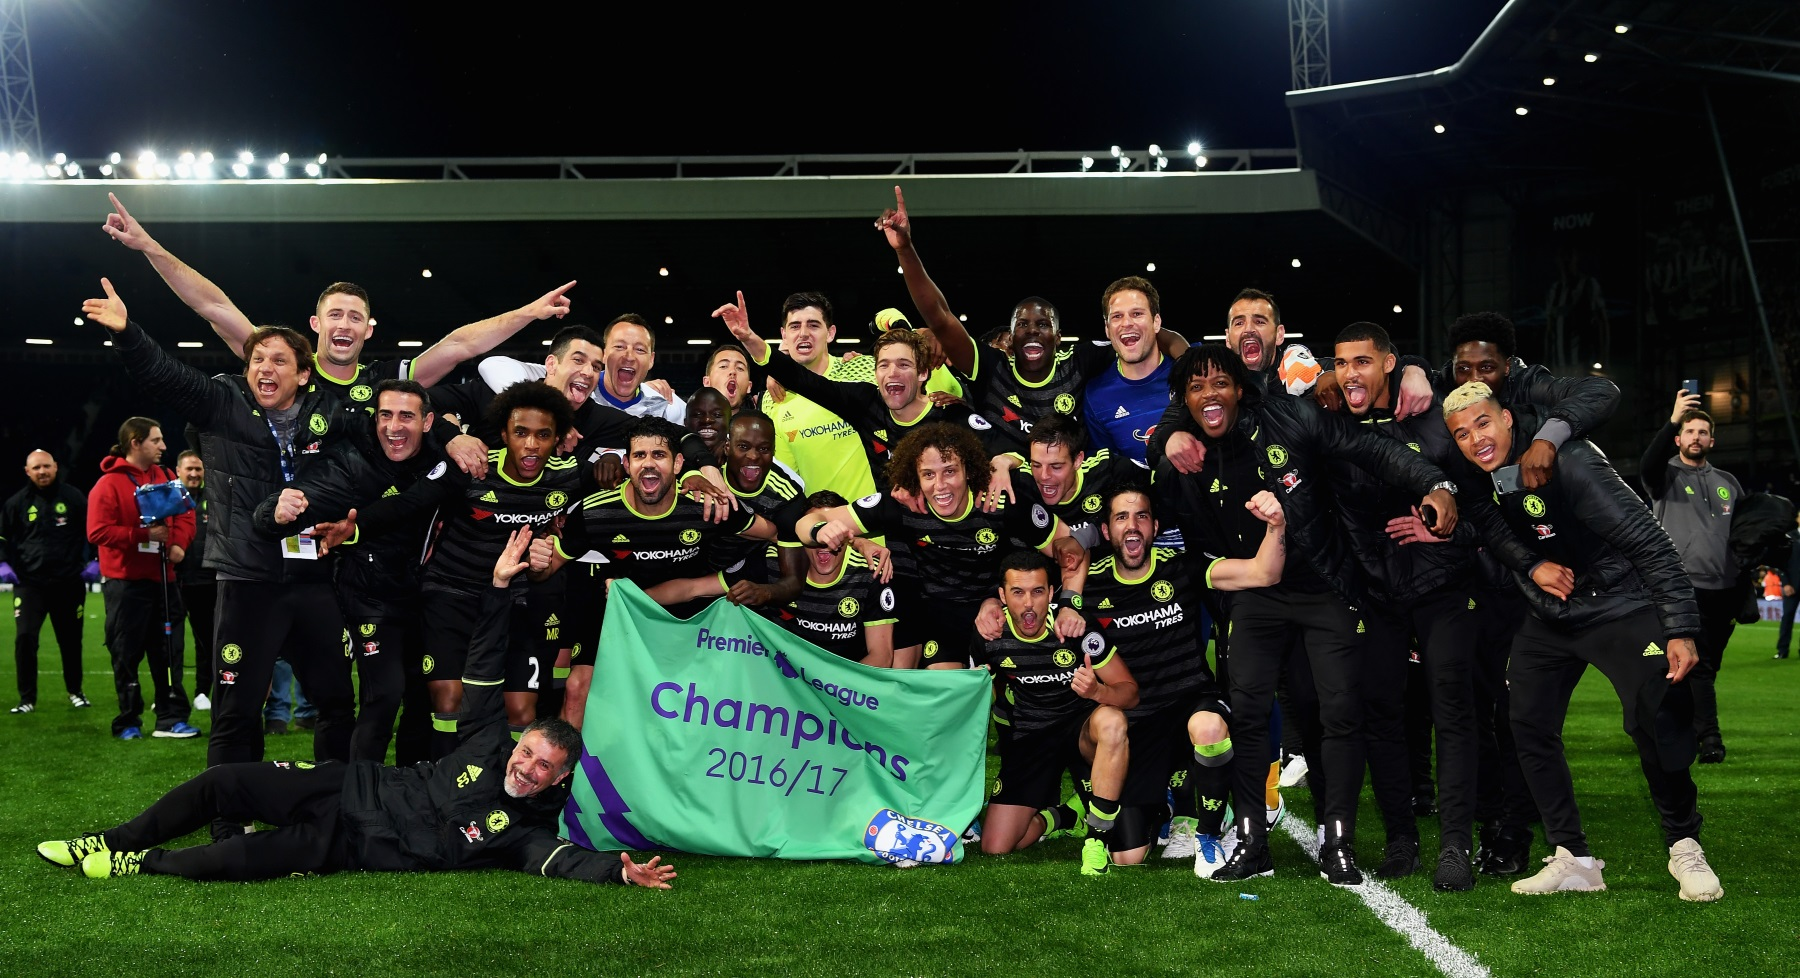 Yokohama-Sponsored Chelsea FC Clinches English Premier League Championship